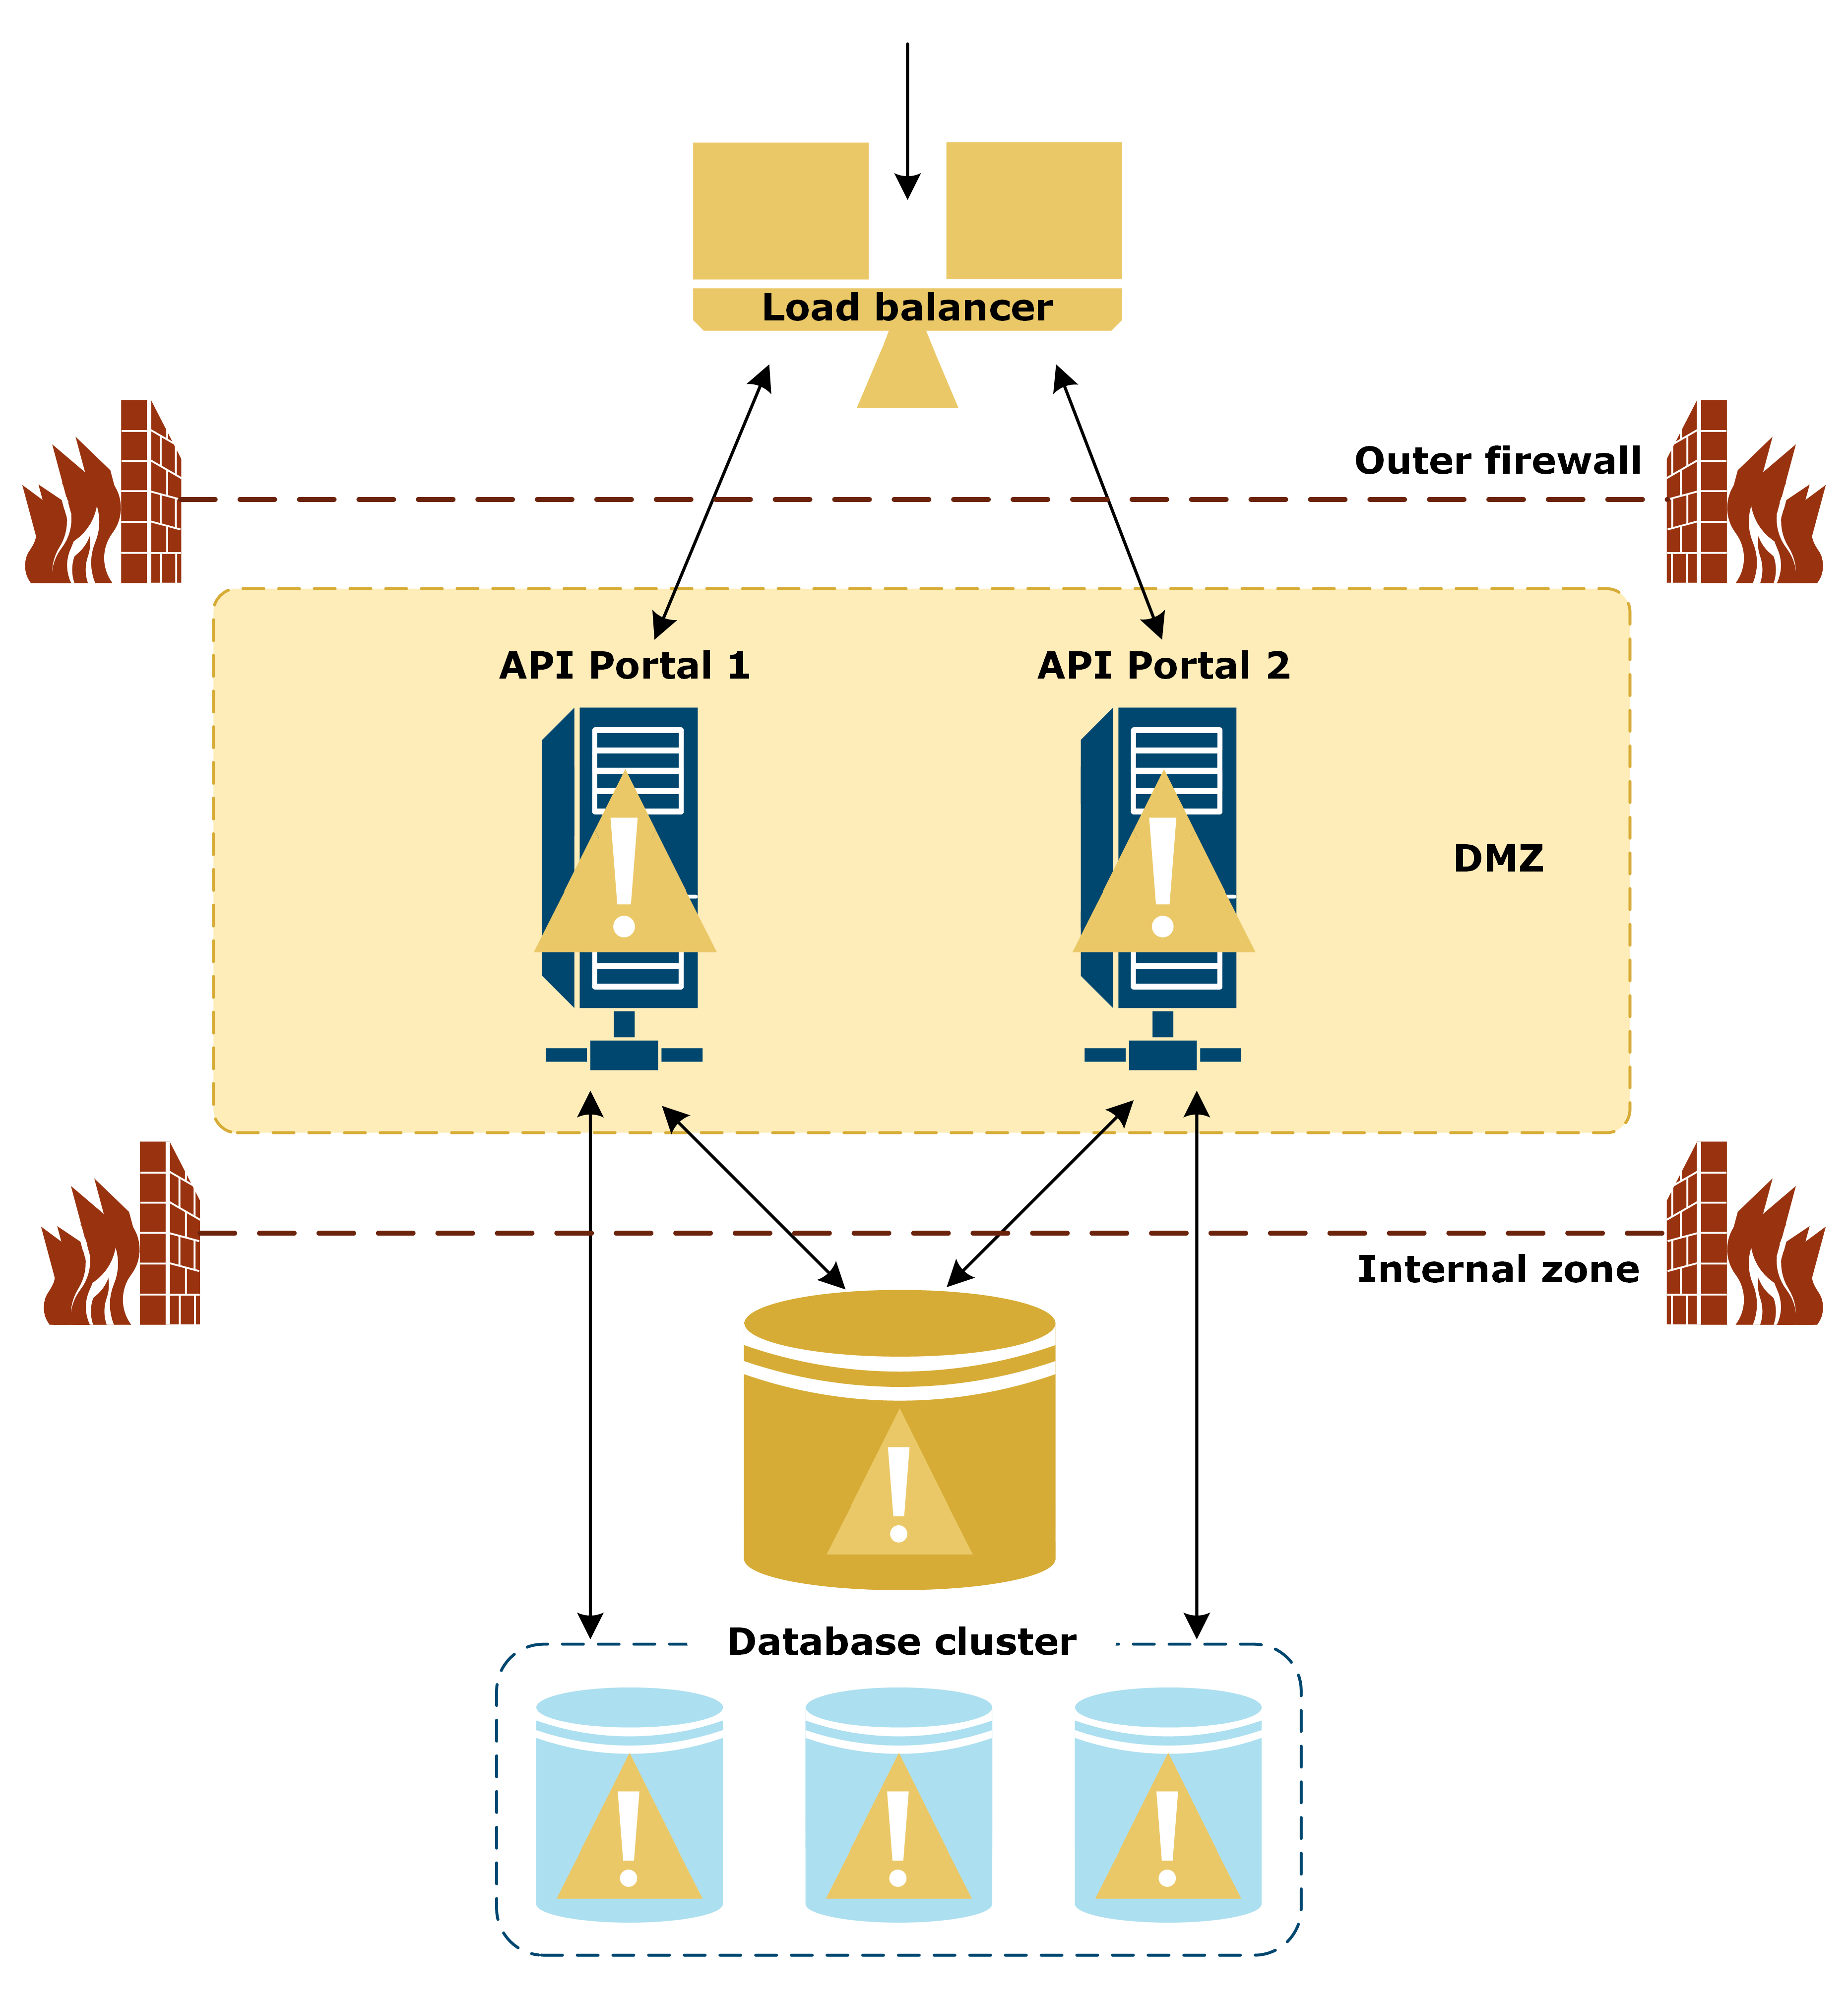 Illustration of APIPortal HA setup when the datacenter is down